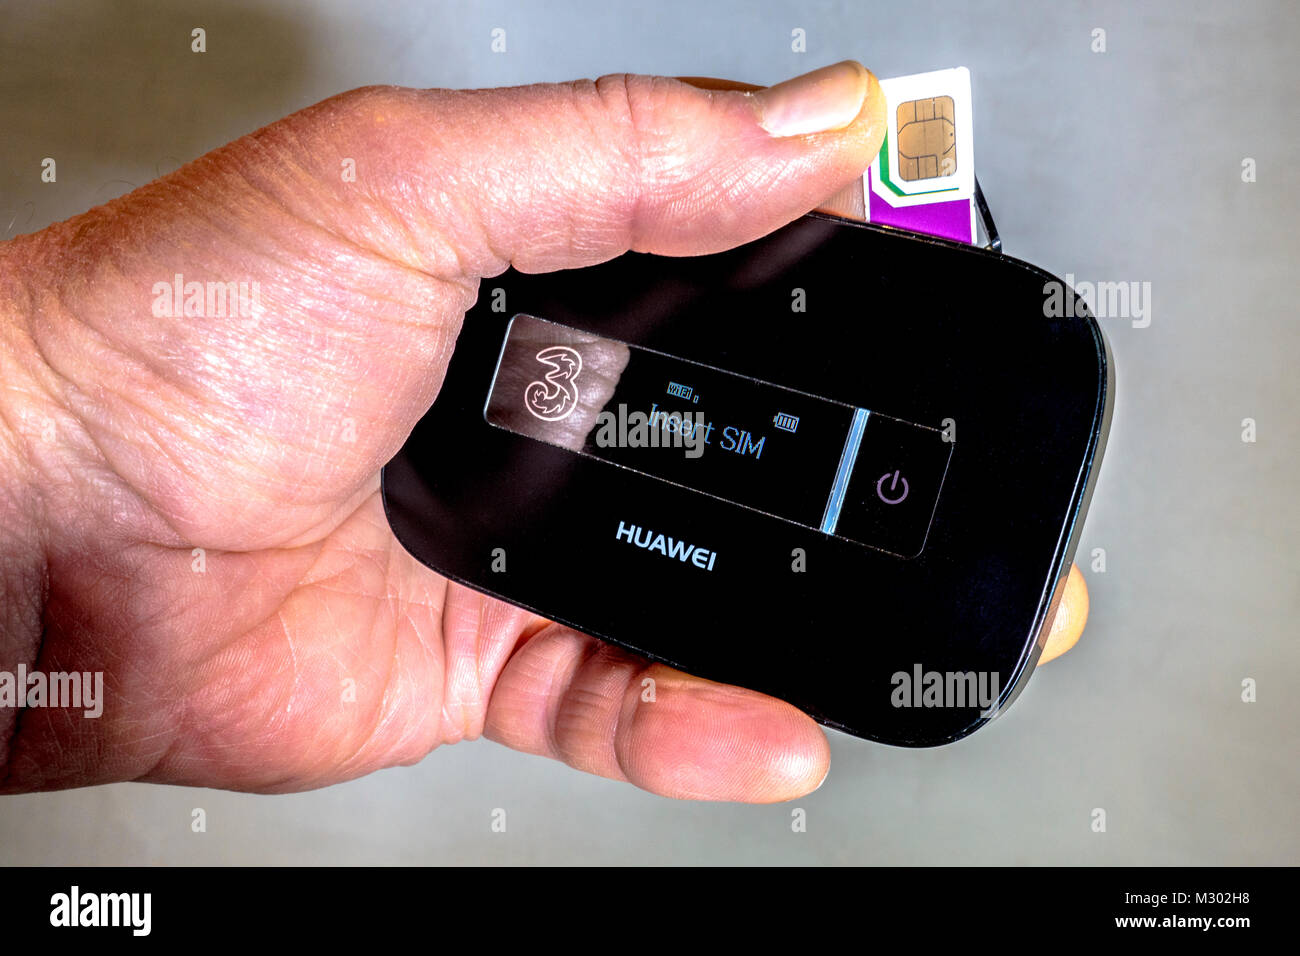 Man's hand holding Three data Trio (three sized) SIM card, being inserted into a Huawei portable wifi router, - Stock Image